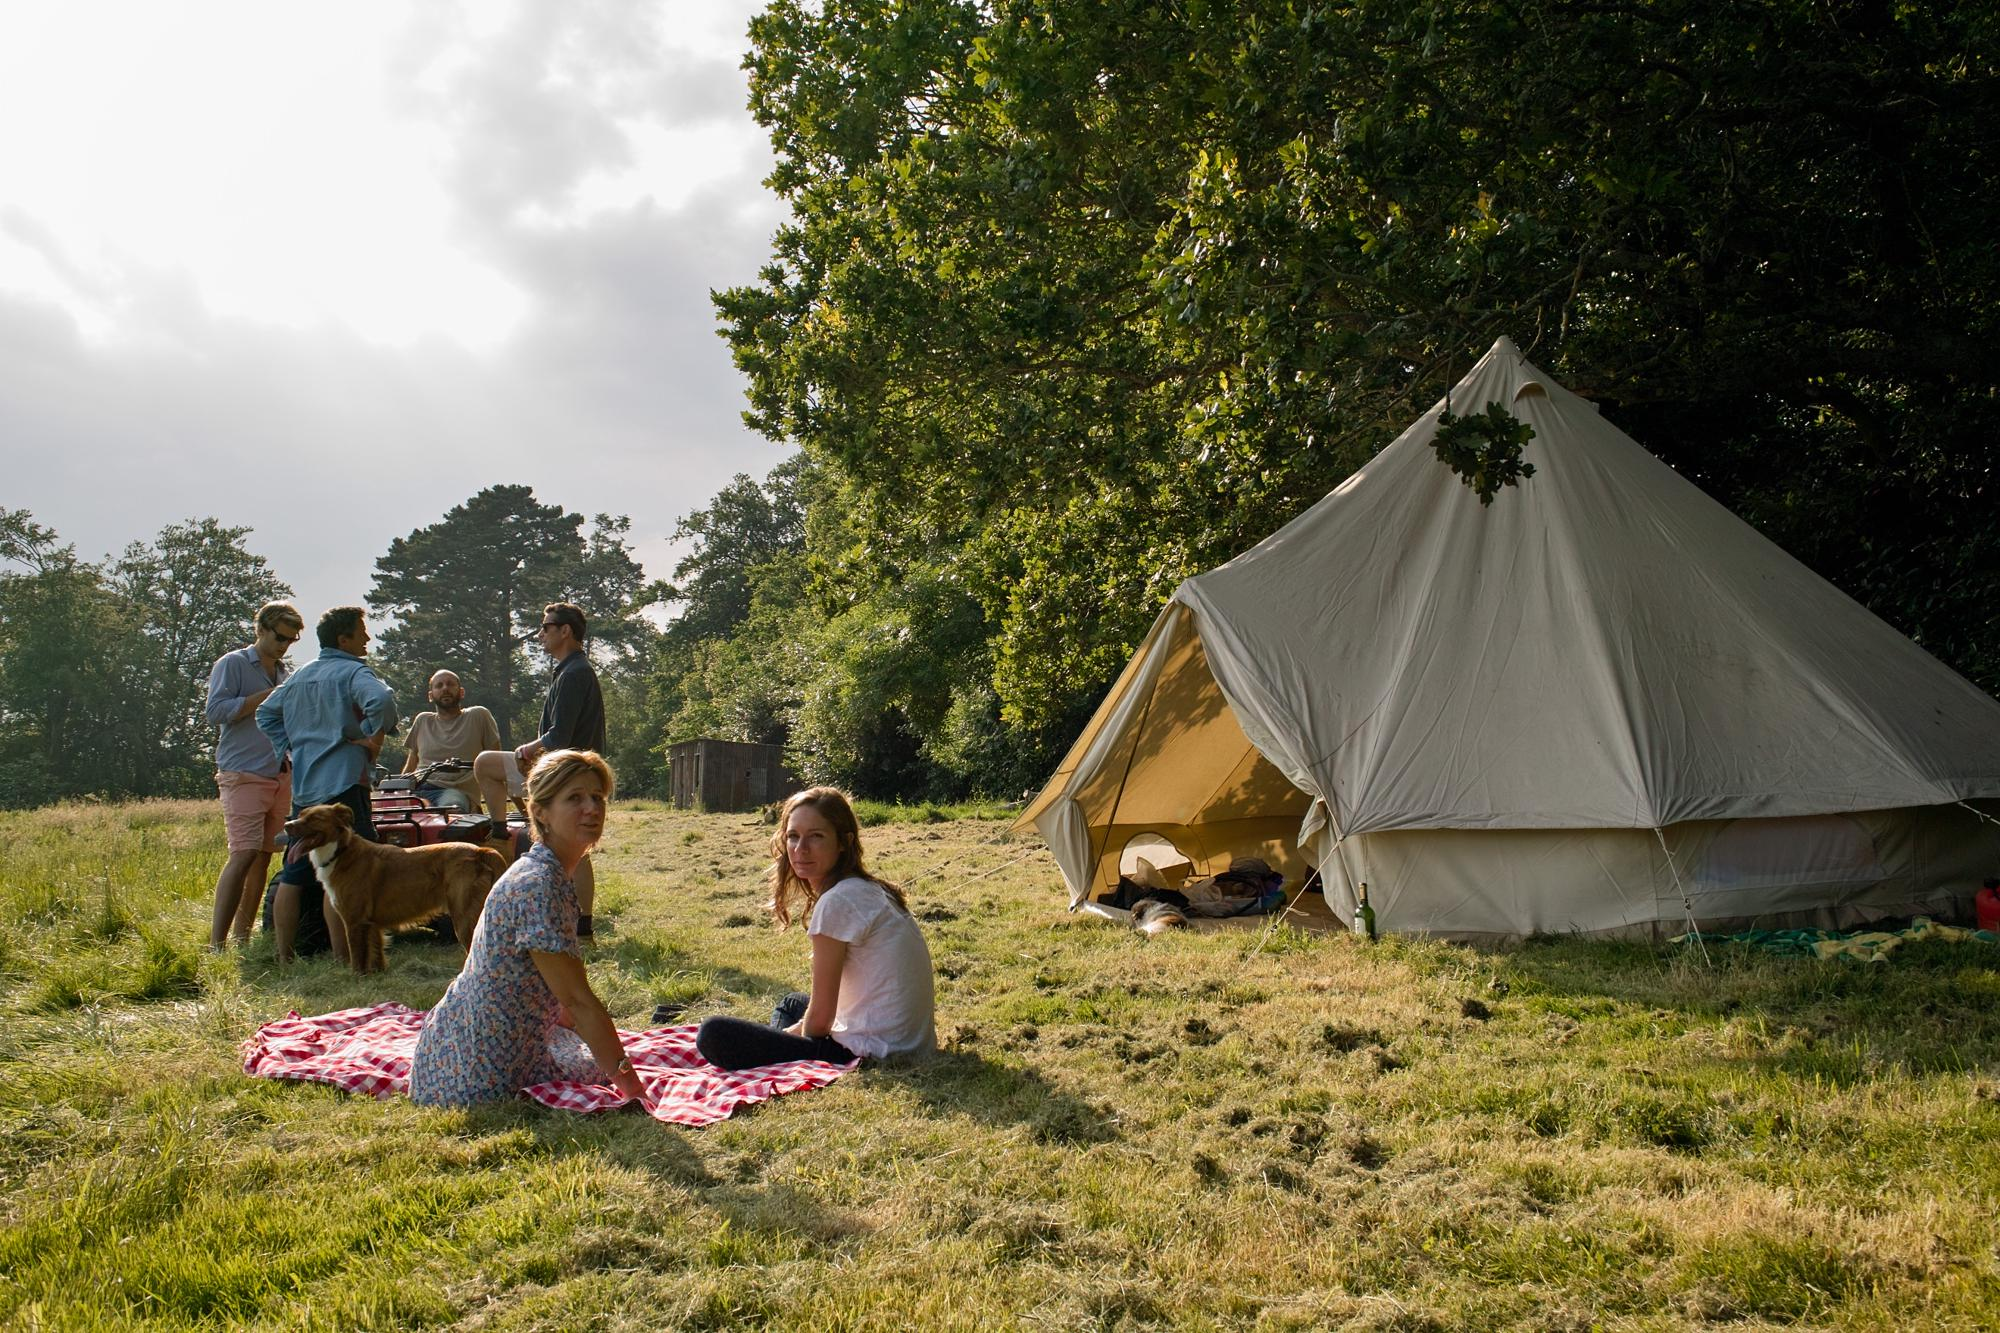 Camping in England - Camping and Campgrounds in England